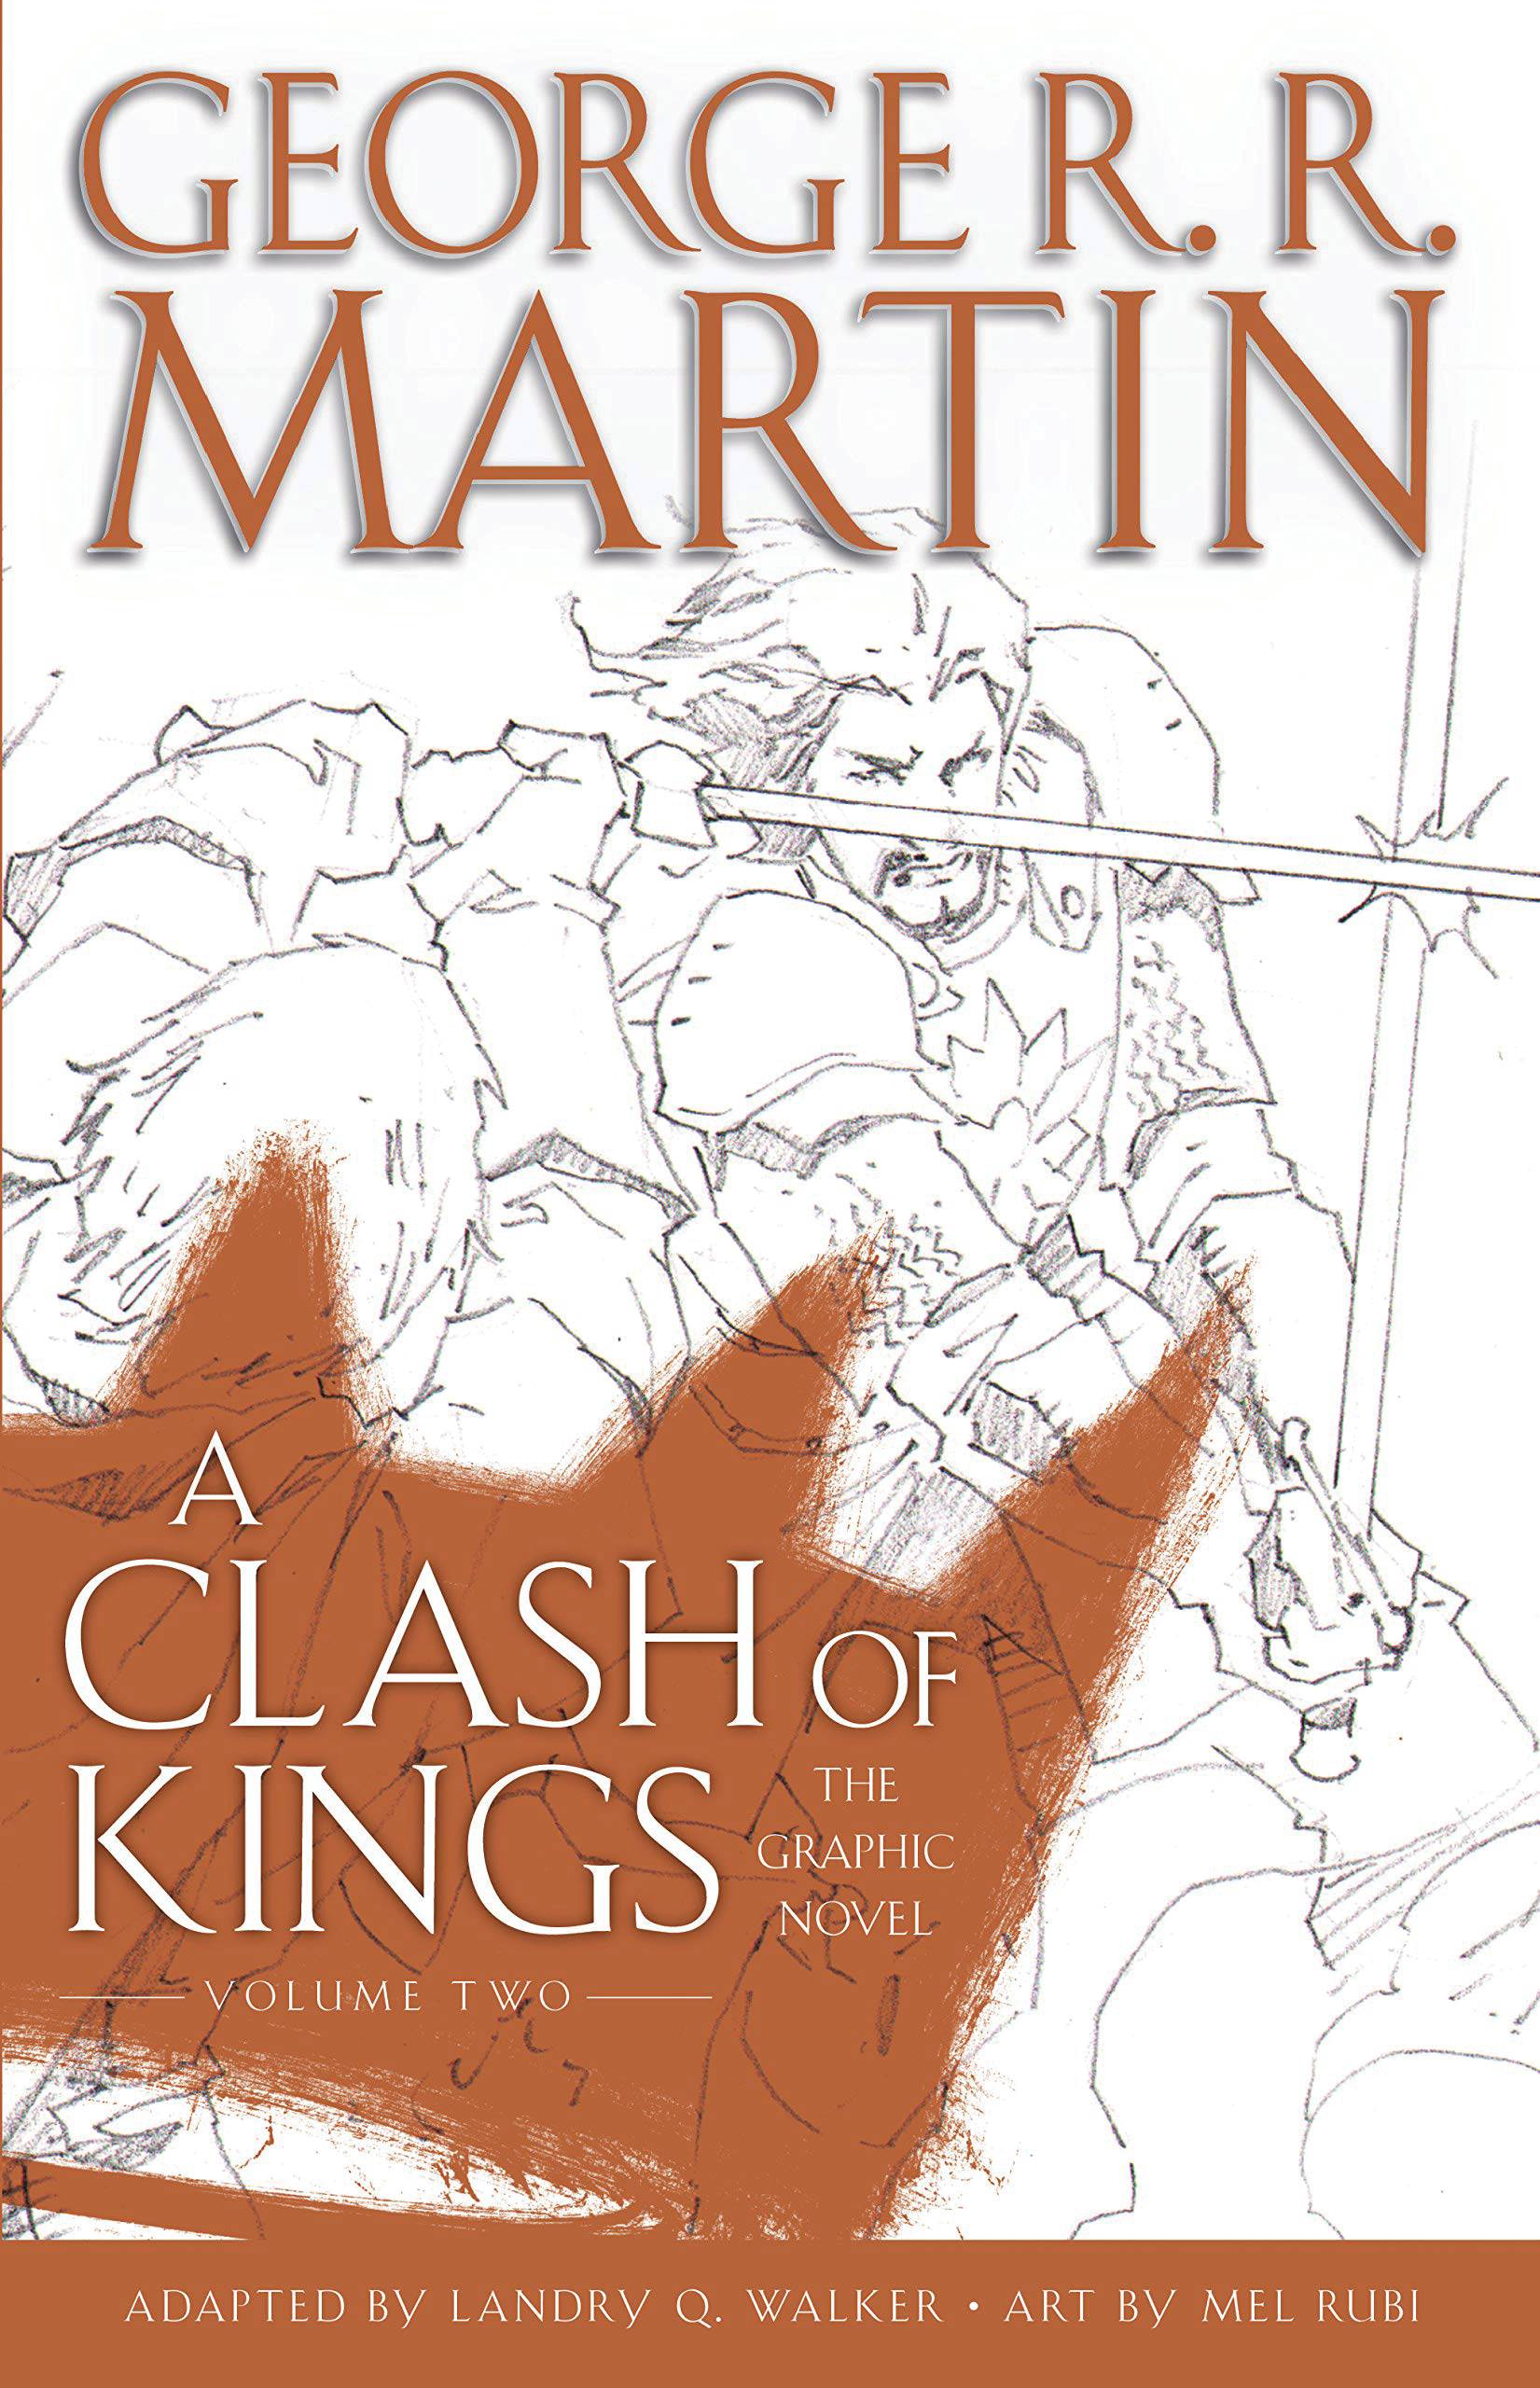 GEORGE RR MARTINS CLASH OF KINGS GN VOL 02 (MR)